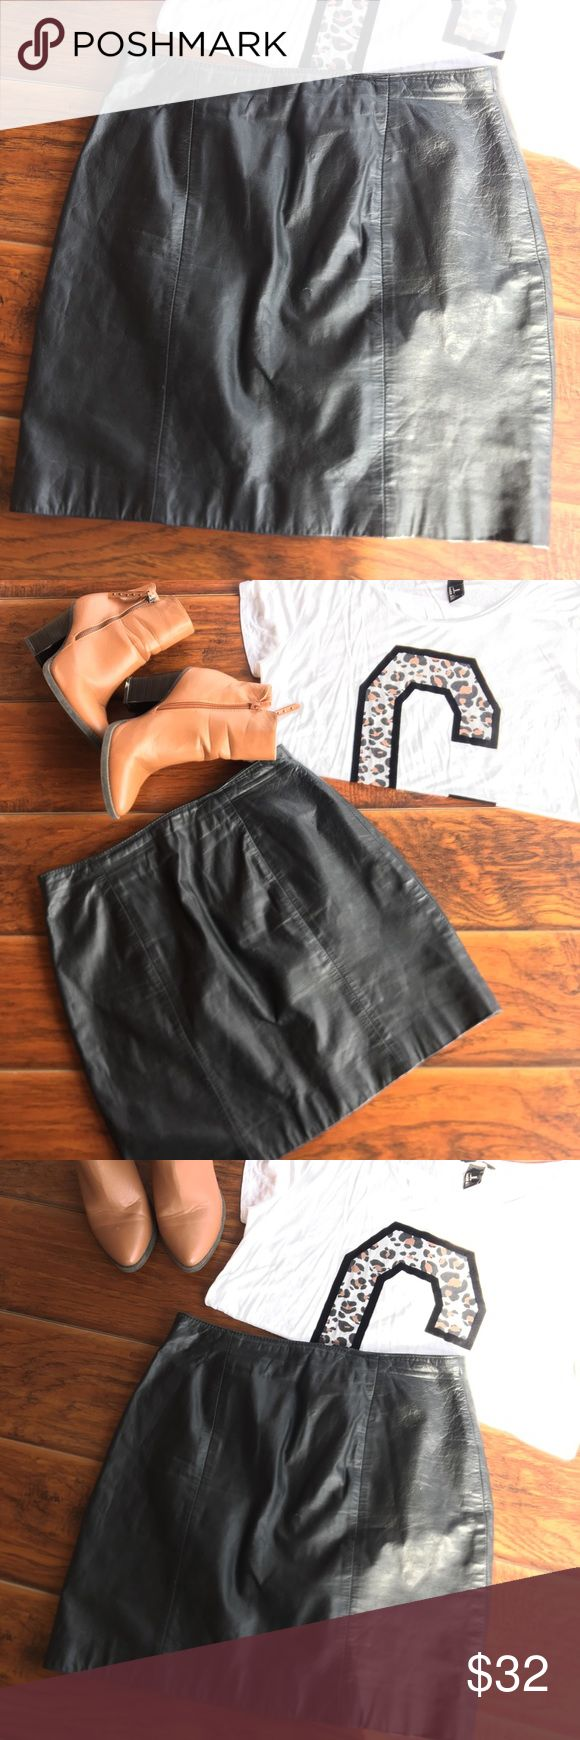 """Wilson's  Leather Black Mini Skirt. Wilson's Leather Black Mini Skirt •Sz: 12 •100% Leather •Pre-owned Good  condition. •zipper in the back part  Approx. measurements laying flat down and in inches: Waist: 15"""" Length: 17.5"""" Leg opening:19"""" Wilsons Leather Skirts"""